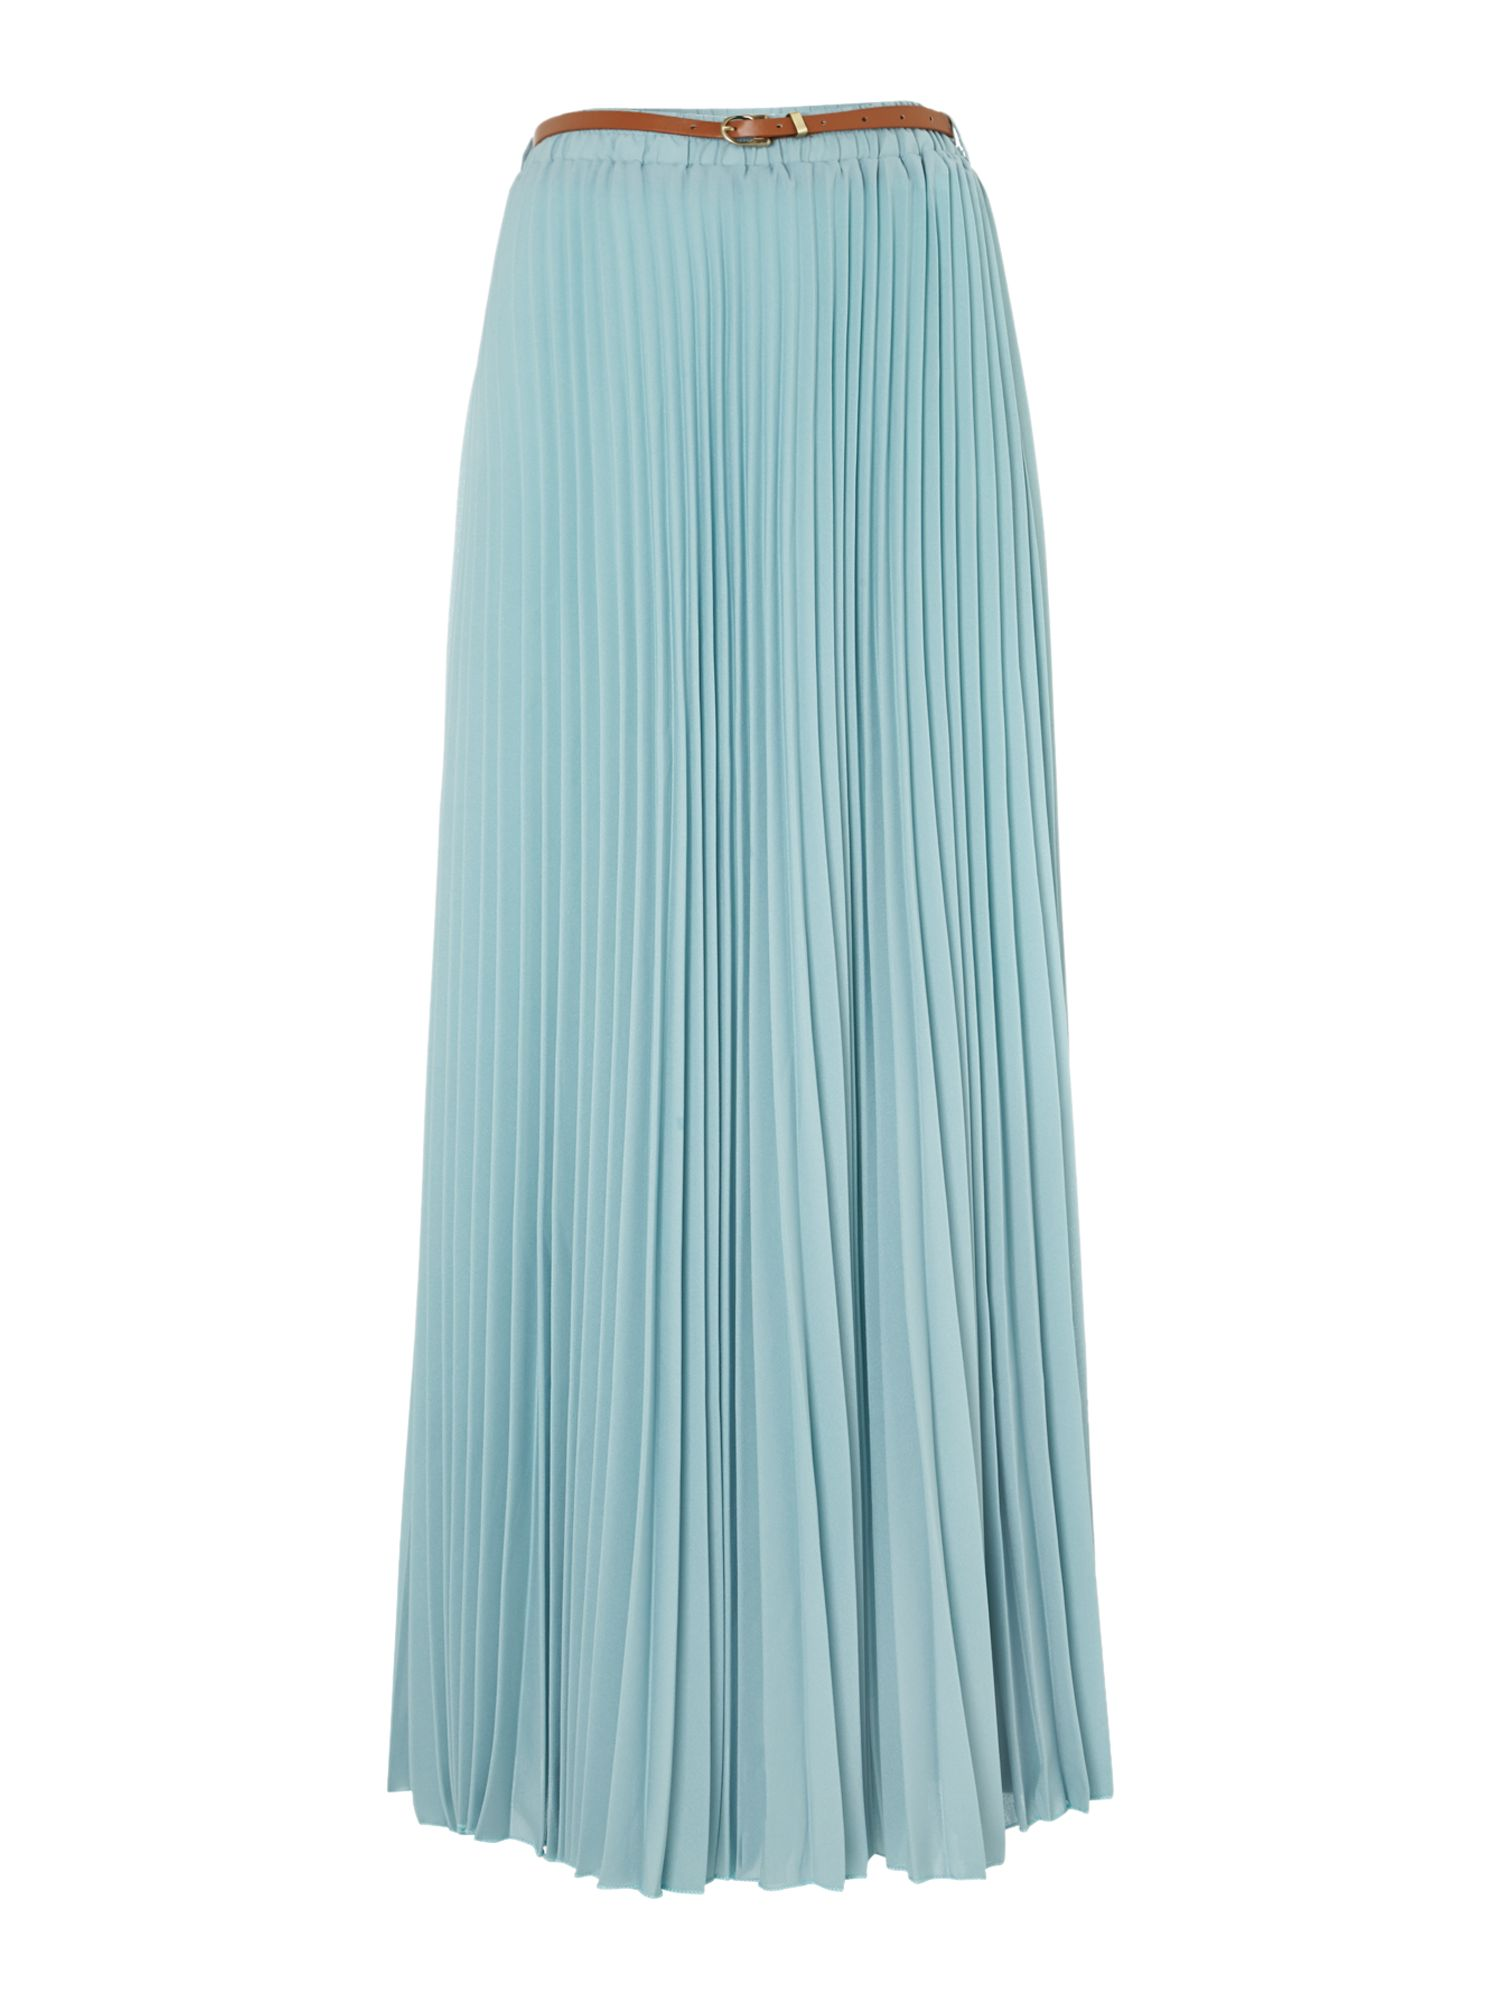 Pleated A-line maxi skirt